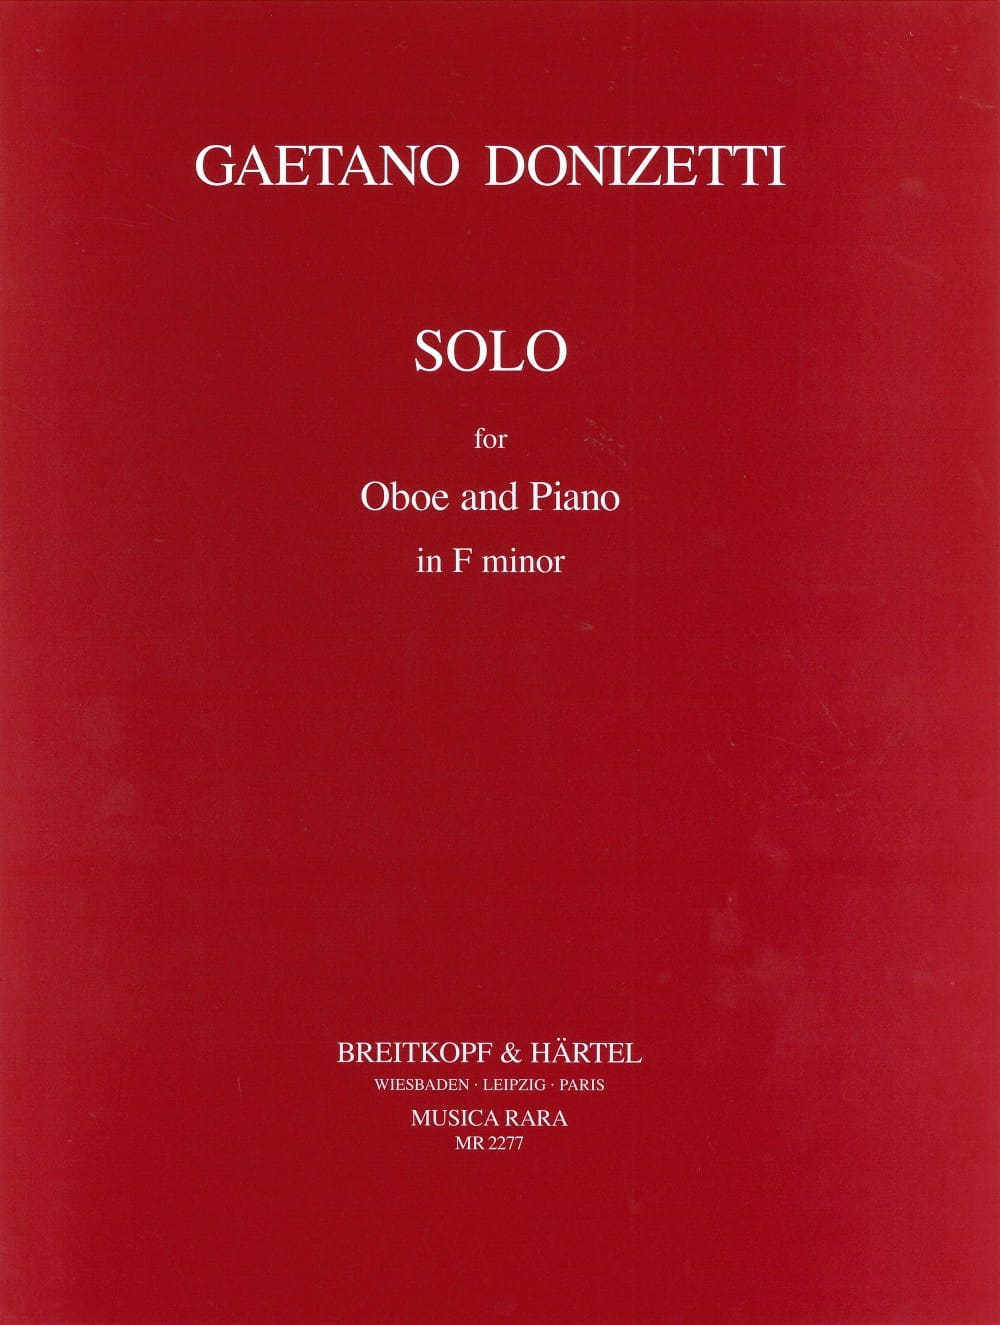 Solo in F minor for Oboe and piano - DONIZETTI - laflutedepan.com